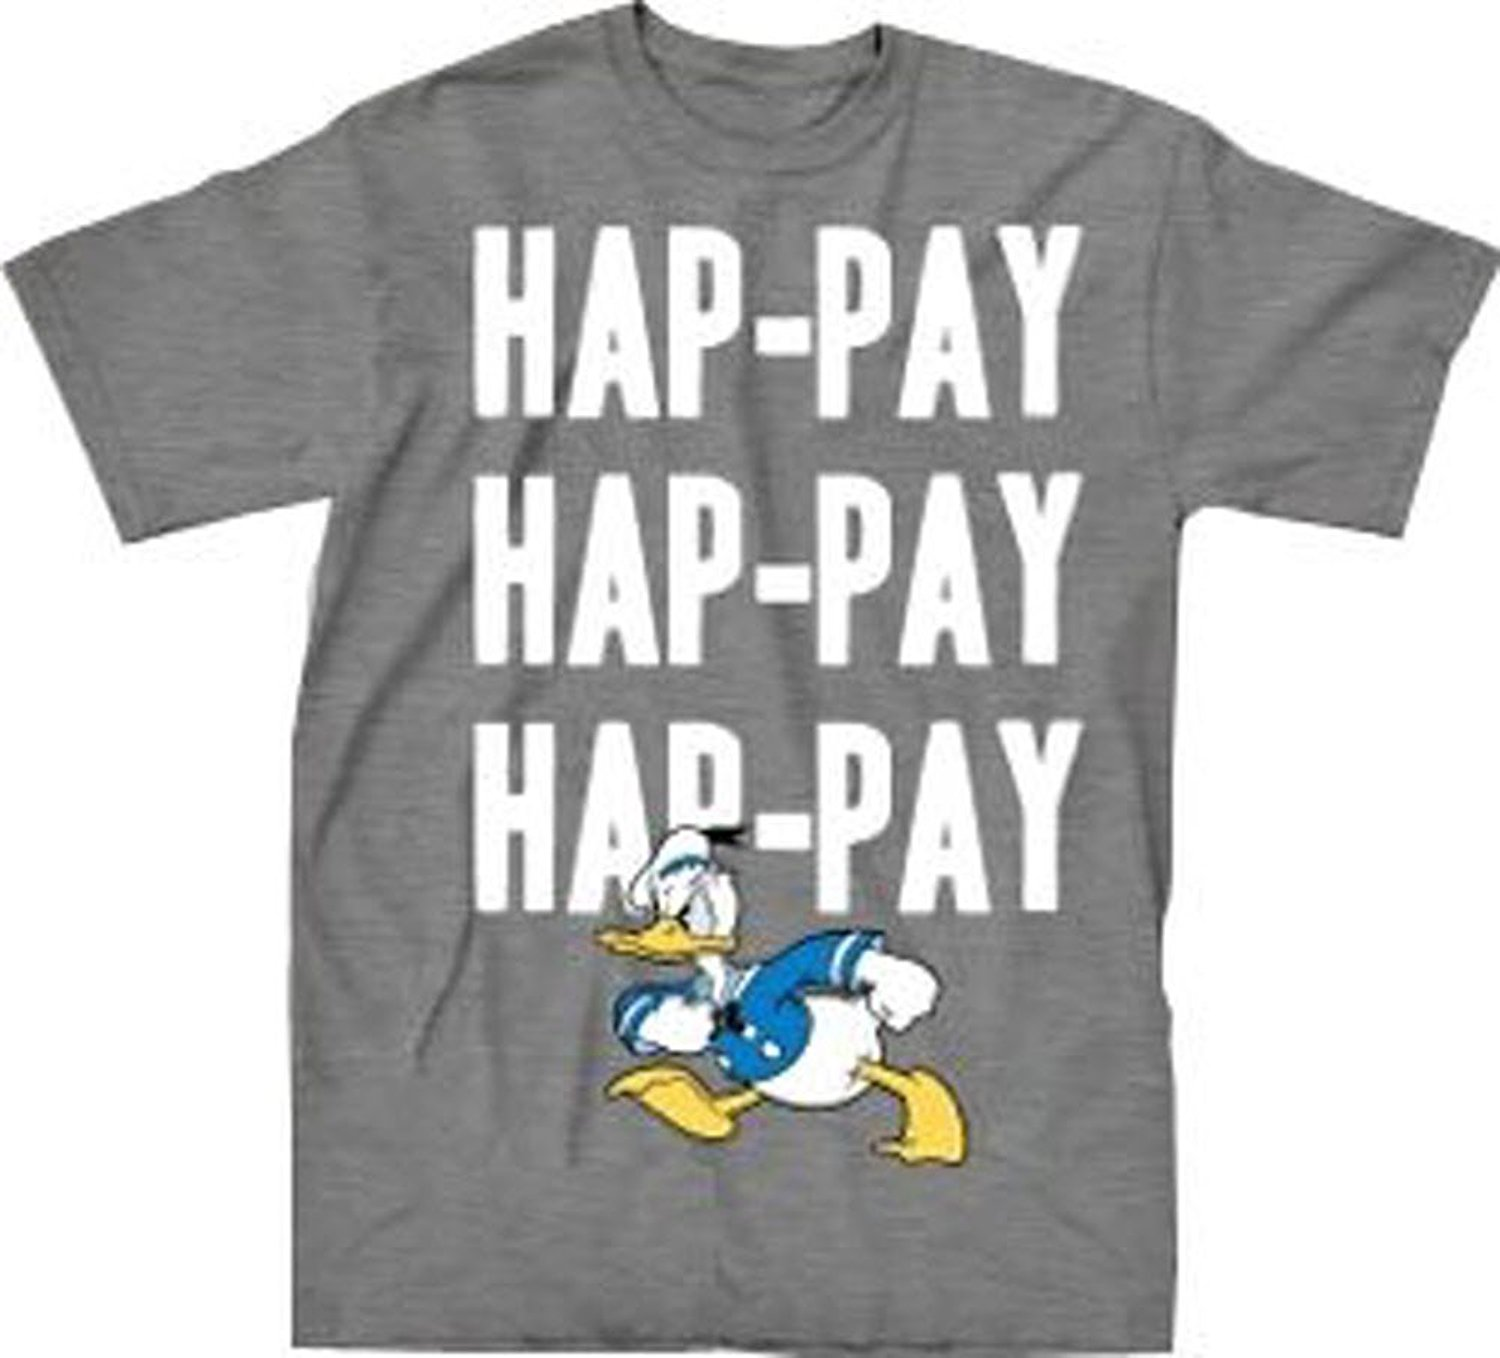 Happy Duck Dynasty T-Shirt : Hap-pay Hap-pay Hap-pay